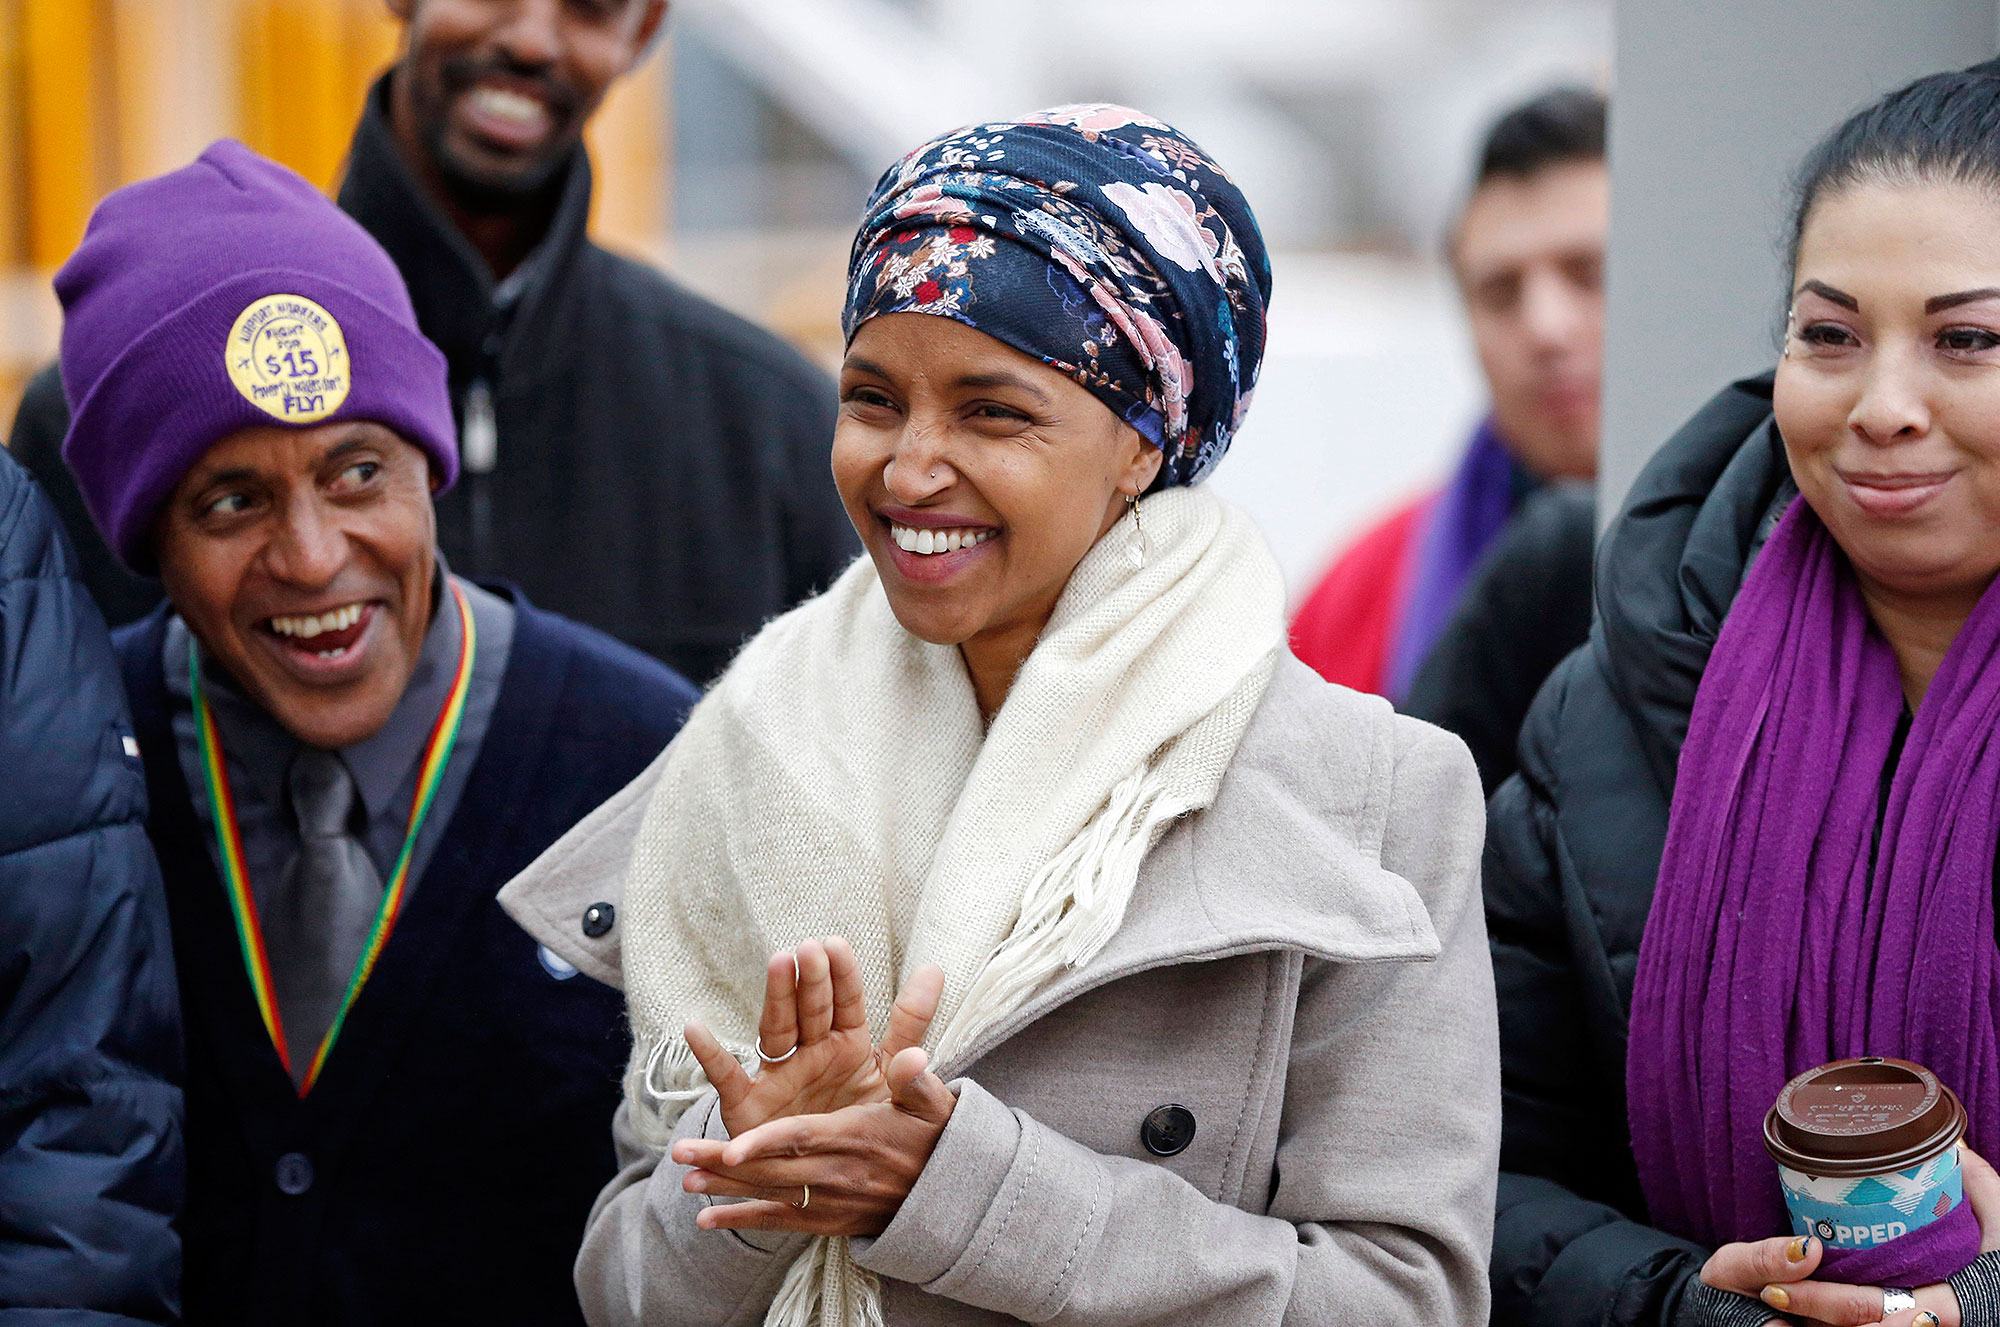 FILE - In this Tuesday, Nov. 29, 2016 file photo, Ilhan Omar, center, applauds during a rally at the Minneapolis-St. Paul International Airport in Minneapolis. Omar, the nation's first elected Somali-American lawmaker says she was harassed by a taxicab driver in Washington, D.C. this week. Minnesota Rep.-elect Omar said the cab driver called her ISIS, lobbed sexist taunts and threatened to remove her hijab during a brief ride on Tuesday Dec. 6, 2016, after a White House meeting on criminal justice reform. (AP Photo/Jim Mone, File)